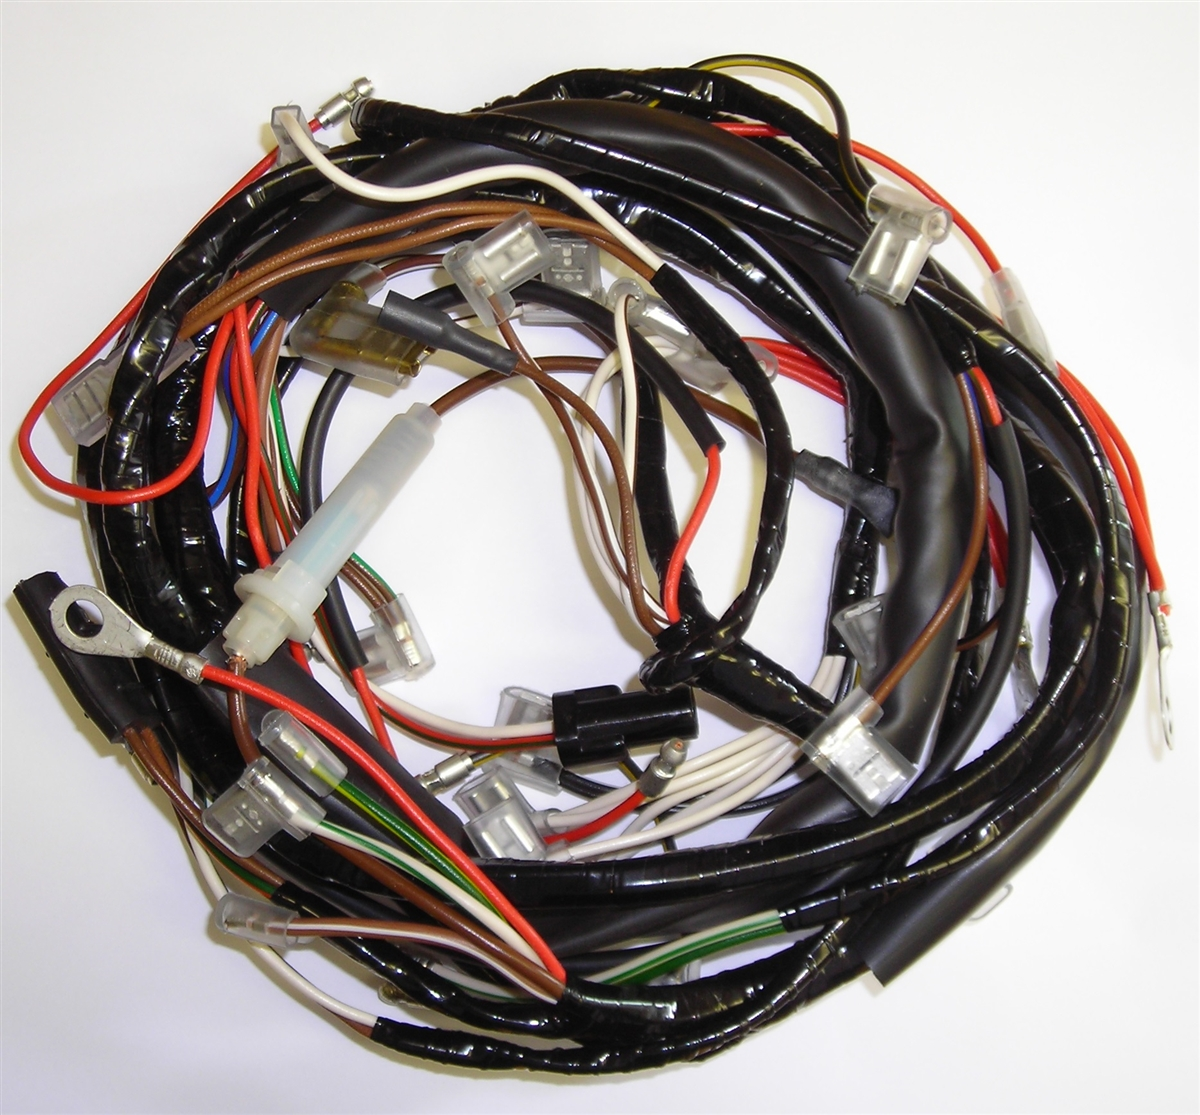 1970 mobile home wiring diagram mitsubishi lancer ecu triumph t100 t120 and tr6 motorcycle harness